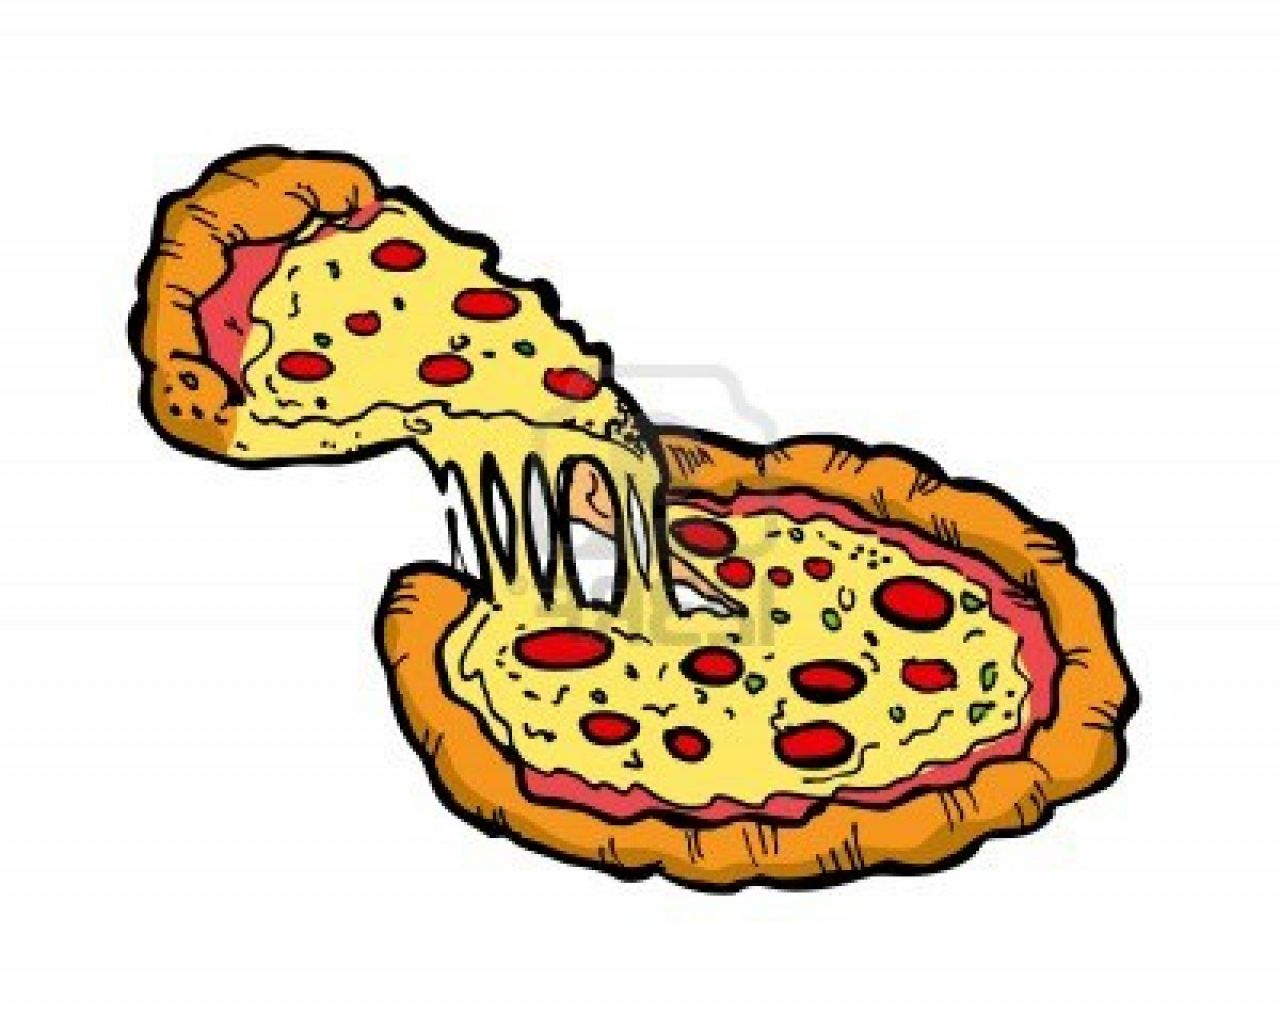 1280x1014 Clipart Of Pizza Many Interesting Cliparts